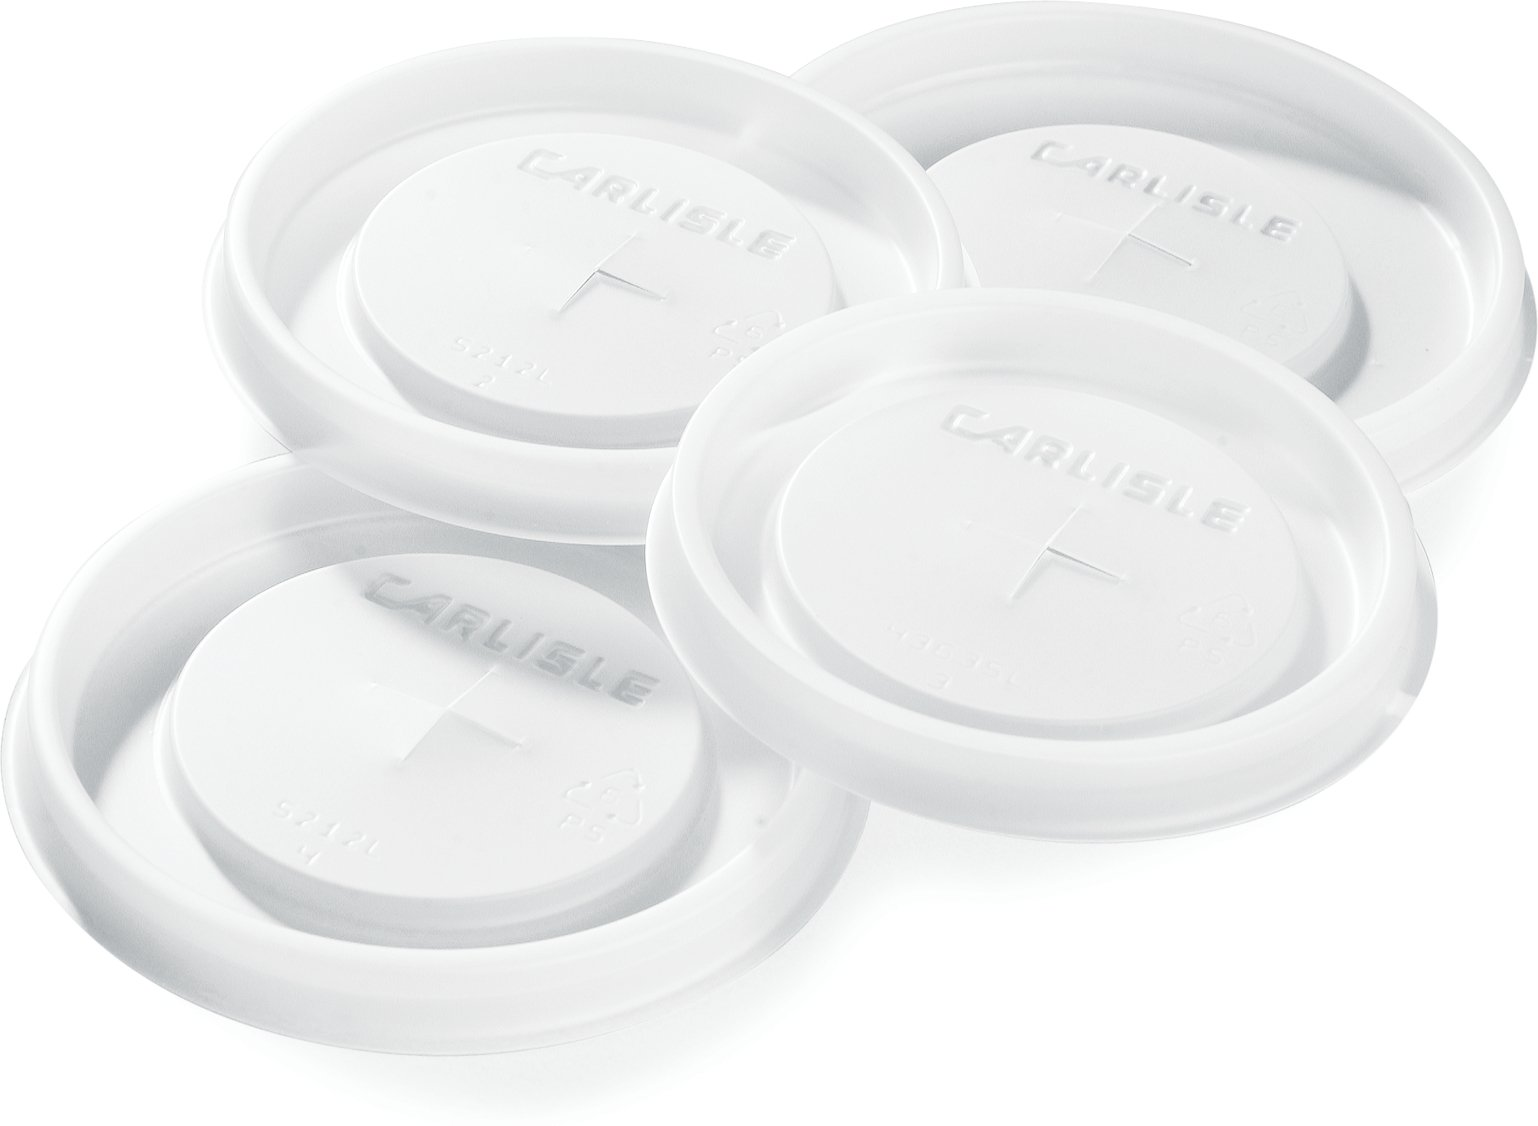 Carlisle 5109L30 Polystyrene Tumbler Lid for 9.5-oz., Translucent (Case of 1000)